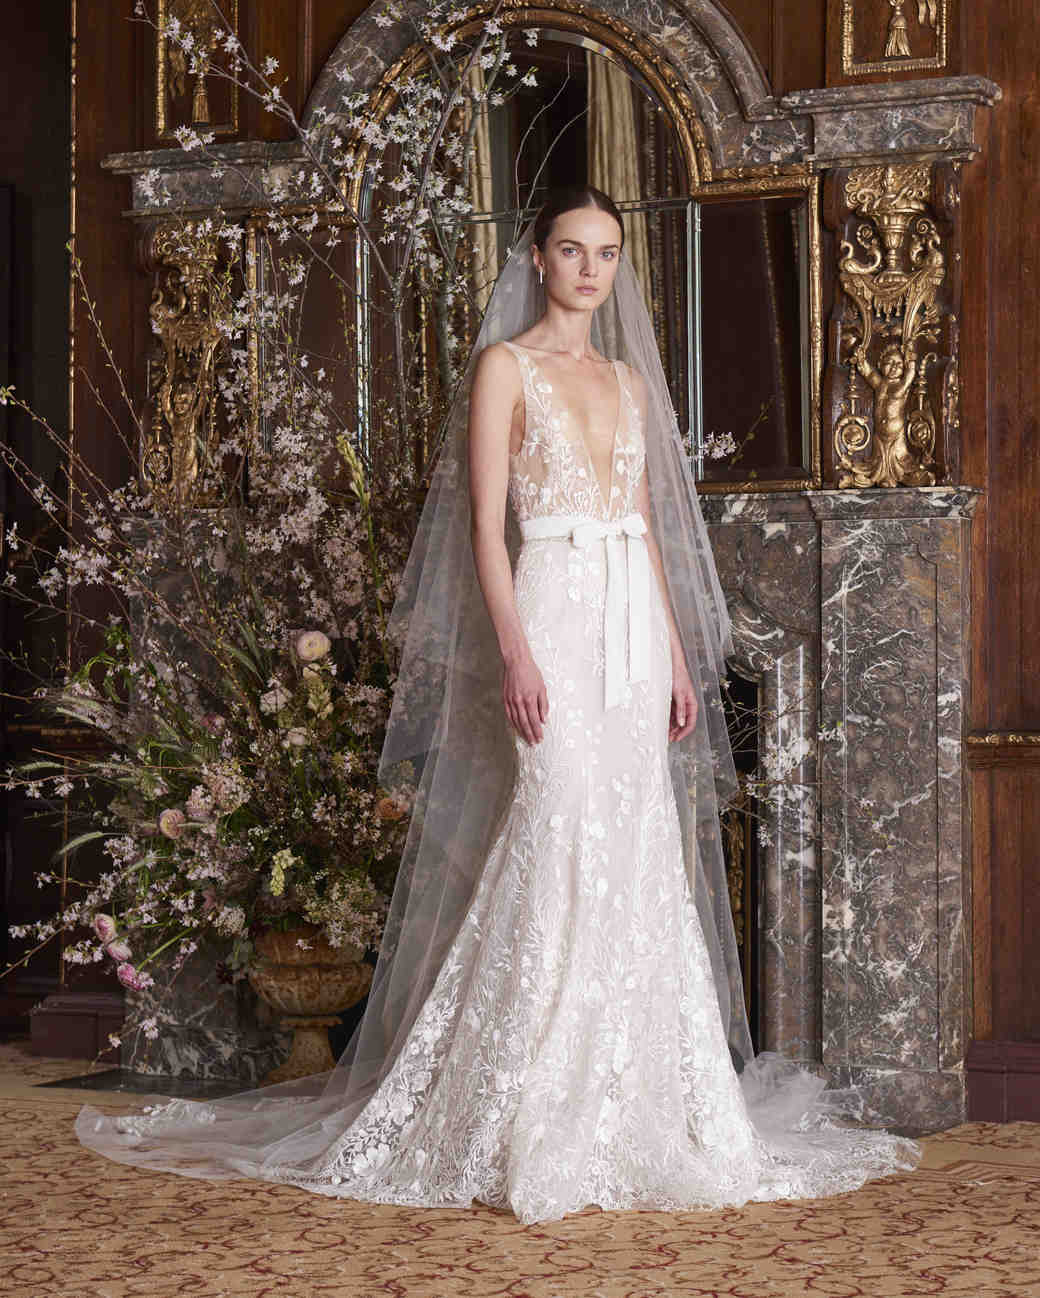 monique lhuillier wedding dress spring 2019 v-neck lace